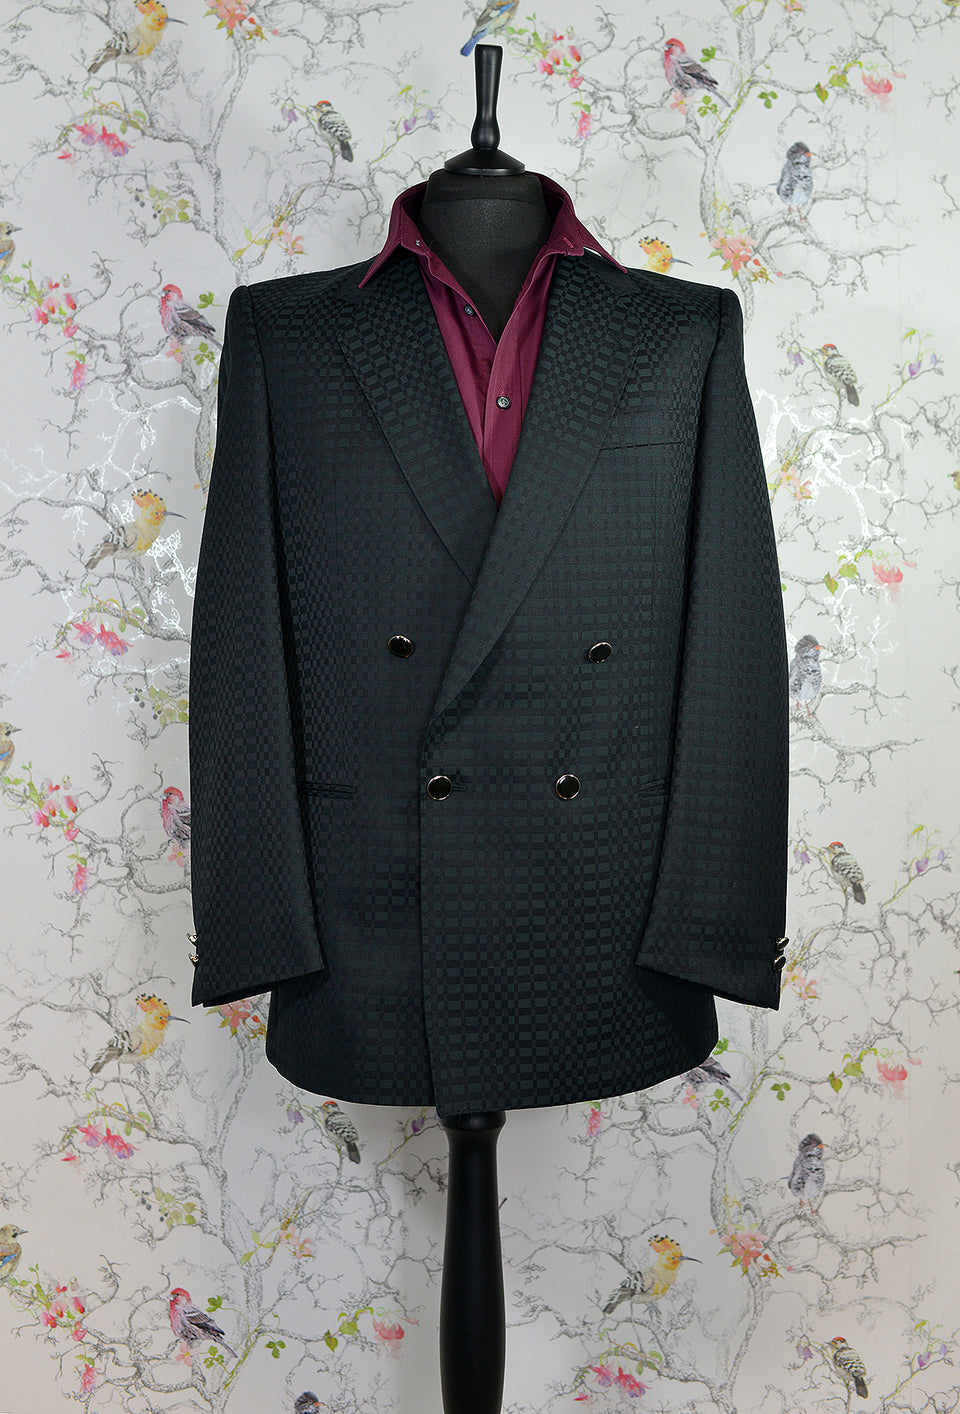 DESCH Men's Double Breasted 80s Retro Blazer, Size 50R. Vintage.